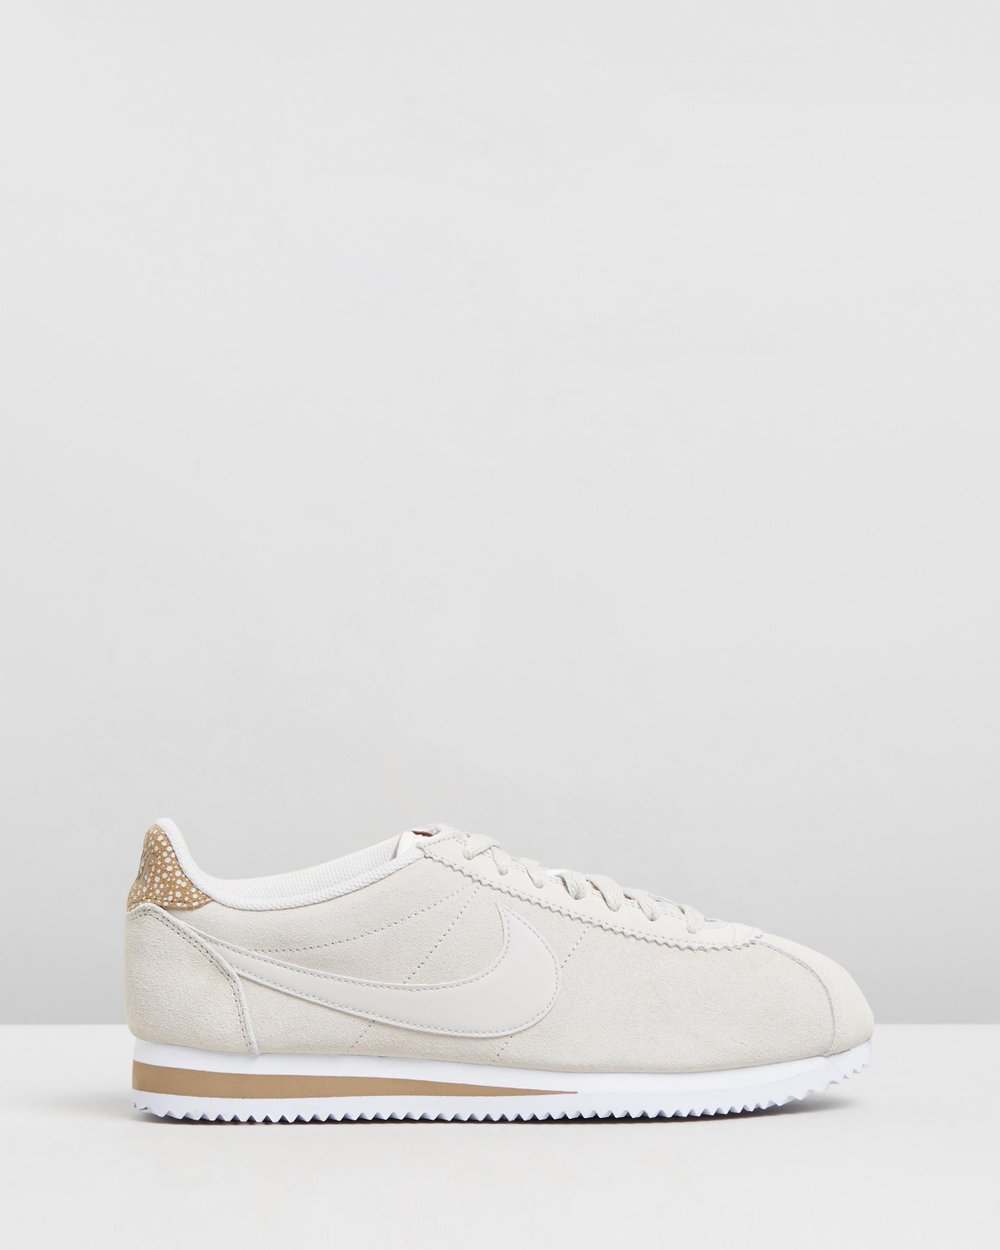 buy online 7f365 15d62 Classic Cortez Leather Premium - Women's by Nike Online | THE ICONIC |  Australia